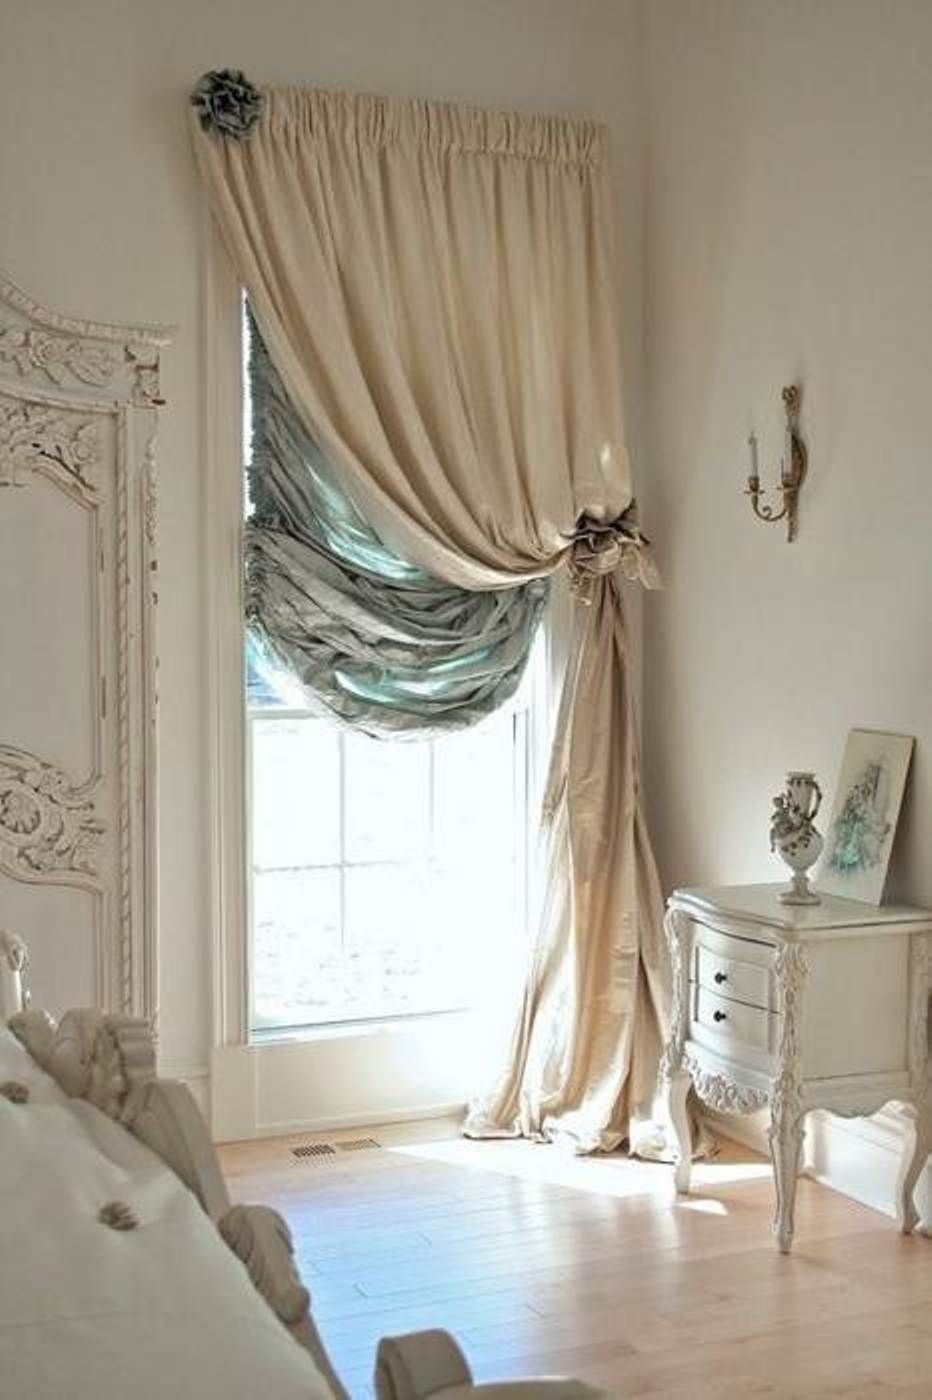 How To Pick Curtains drapery ideas | great curtain ideas for bedroom | better home and